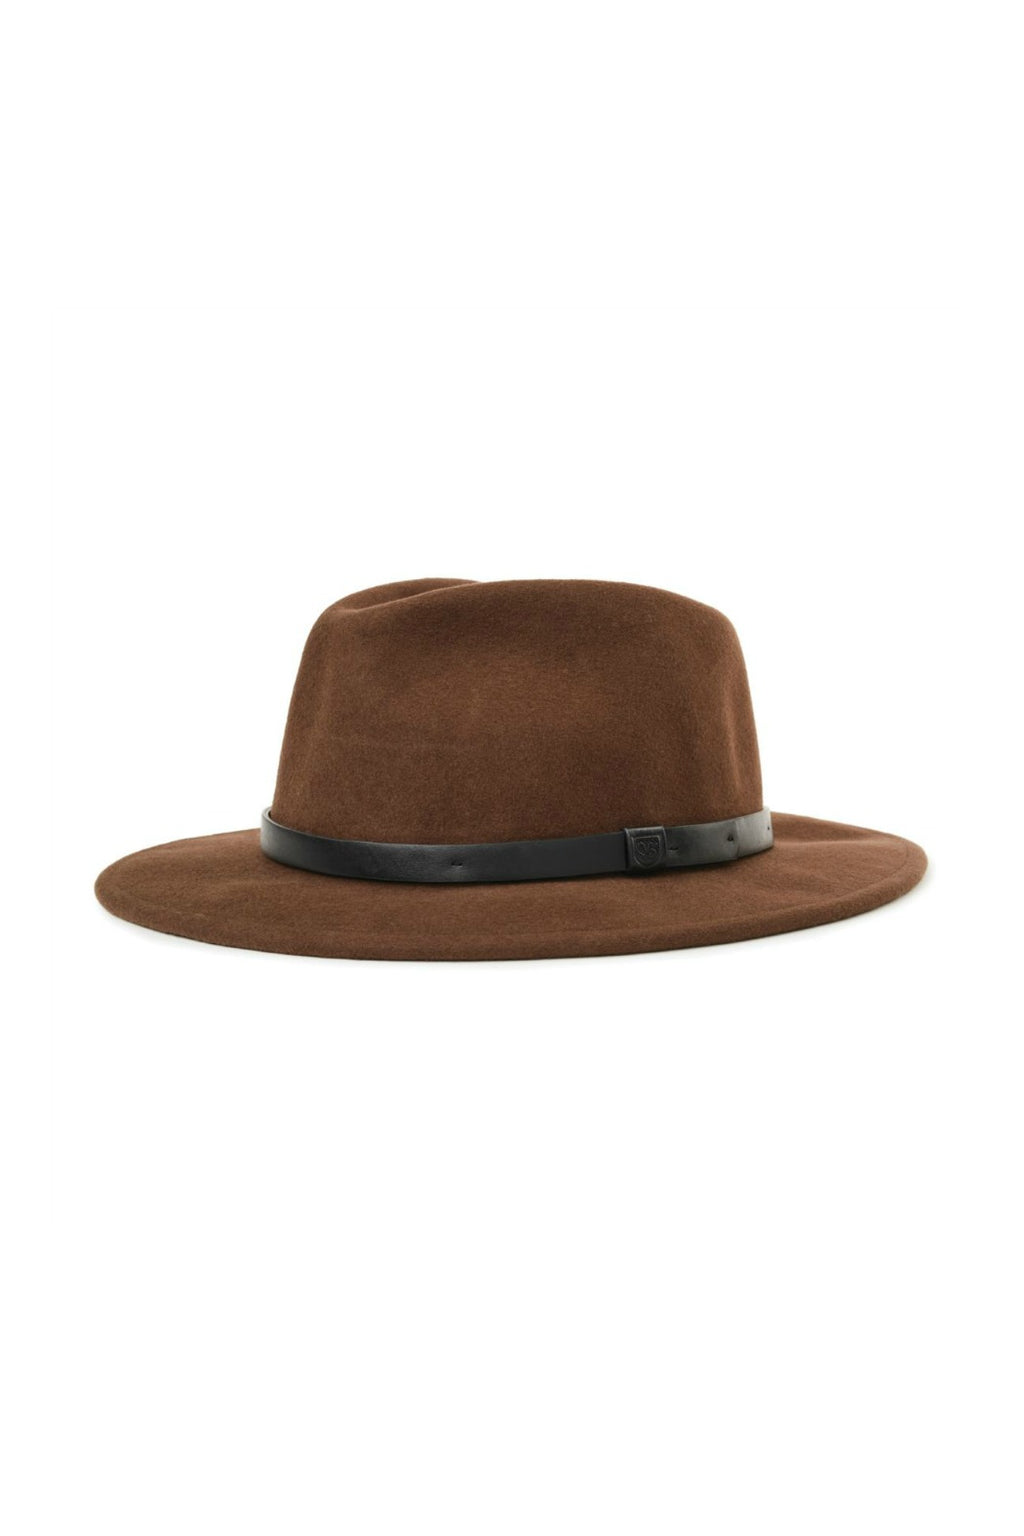 Brixton Messer Fedora in Brown/Black